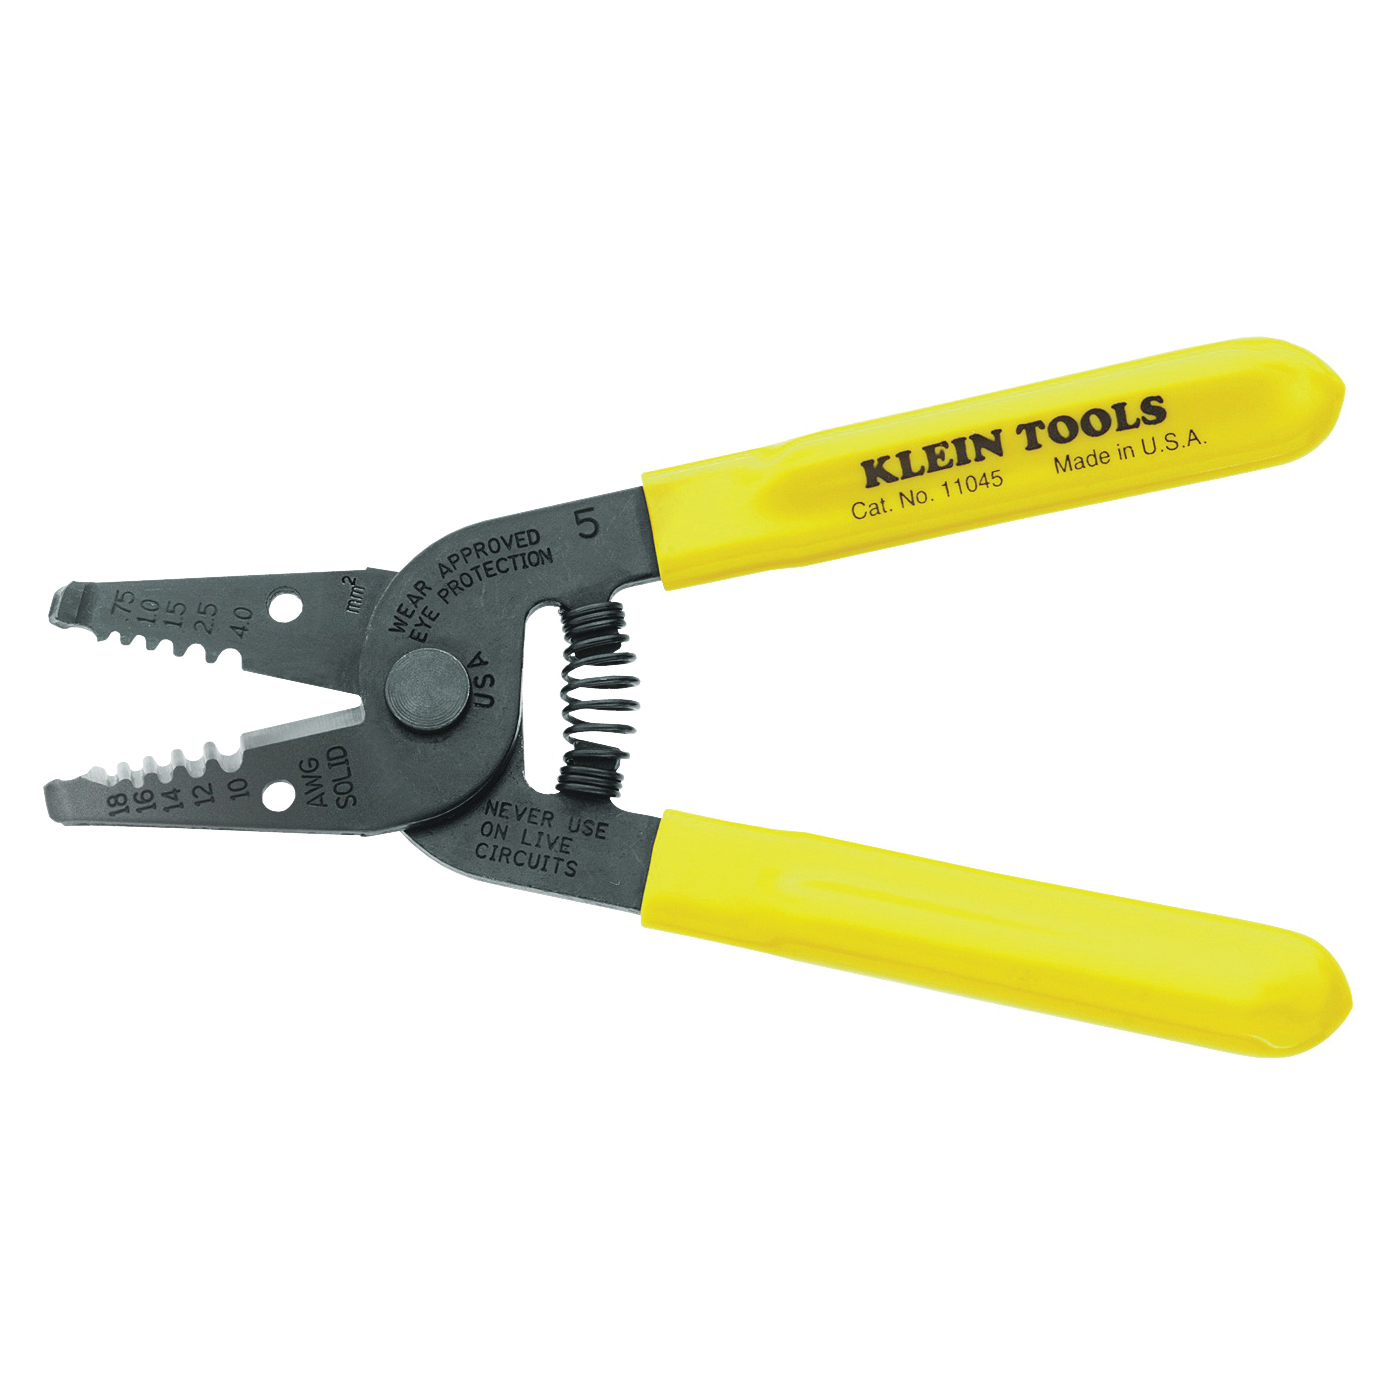 Picture of Klein-Kurve 11045 Wire Stripper, 10 to 18 AWG Wire, 10 to 18 AWG Solid Stripping, 6-1/4 in OAL, Textured Handle